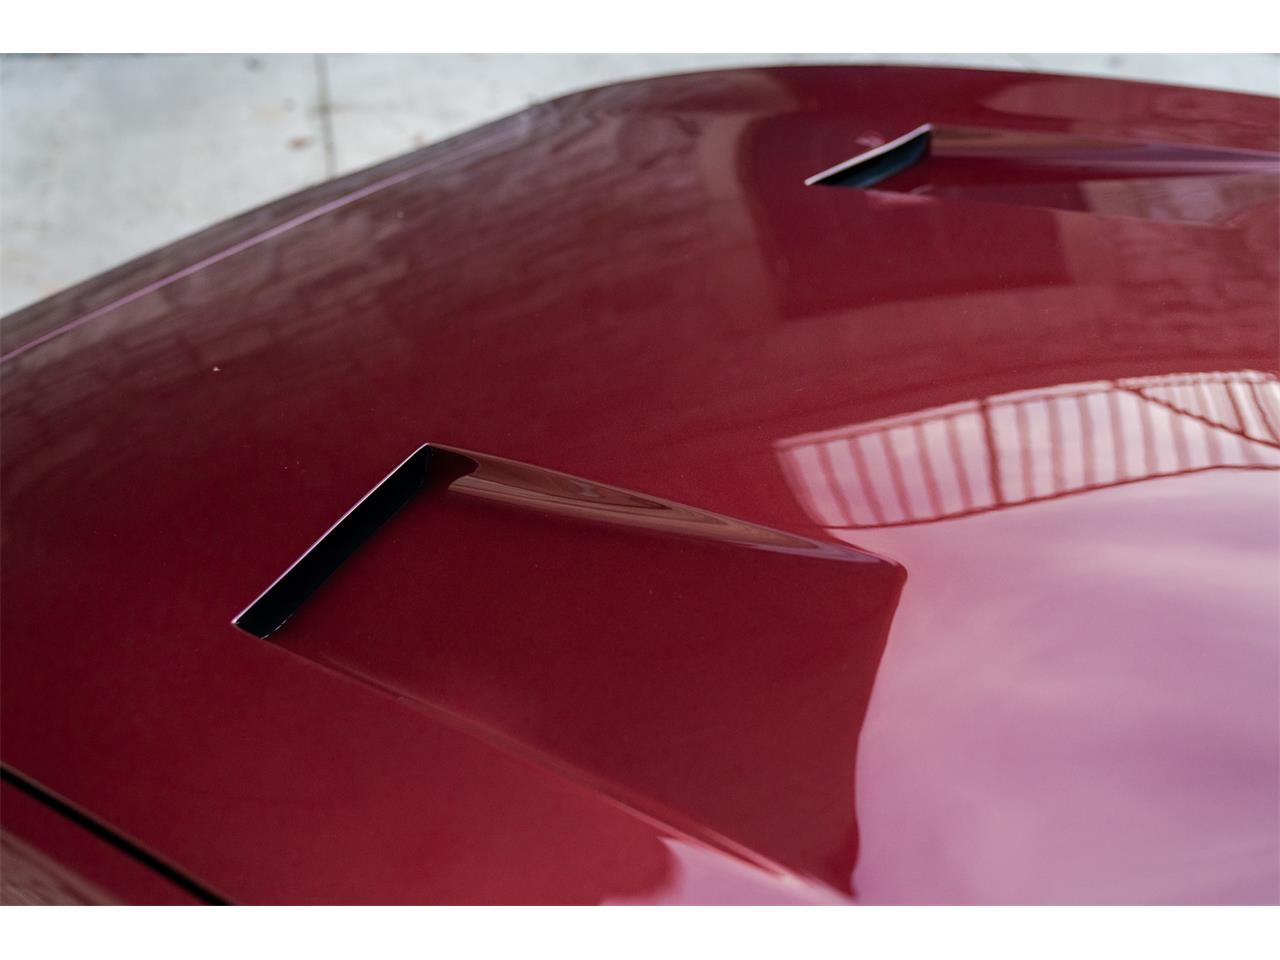 Large Picture of '72 365 GTB/4 Daytona - $725,000.00 Offered by LBI Limited - QL32